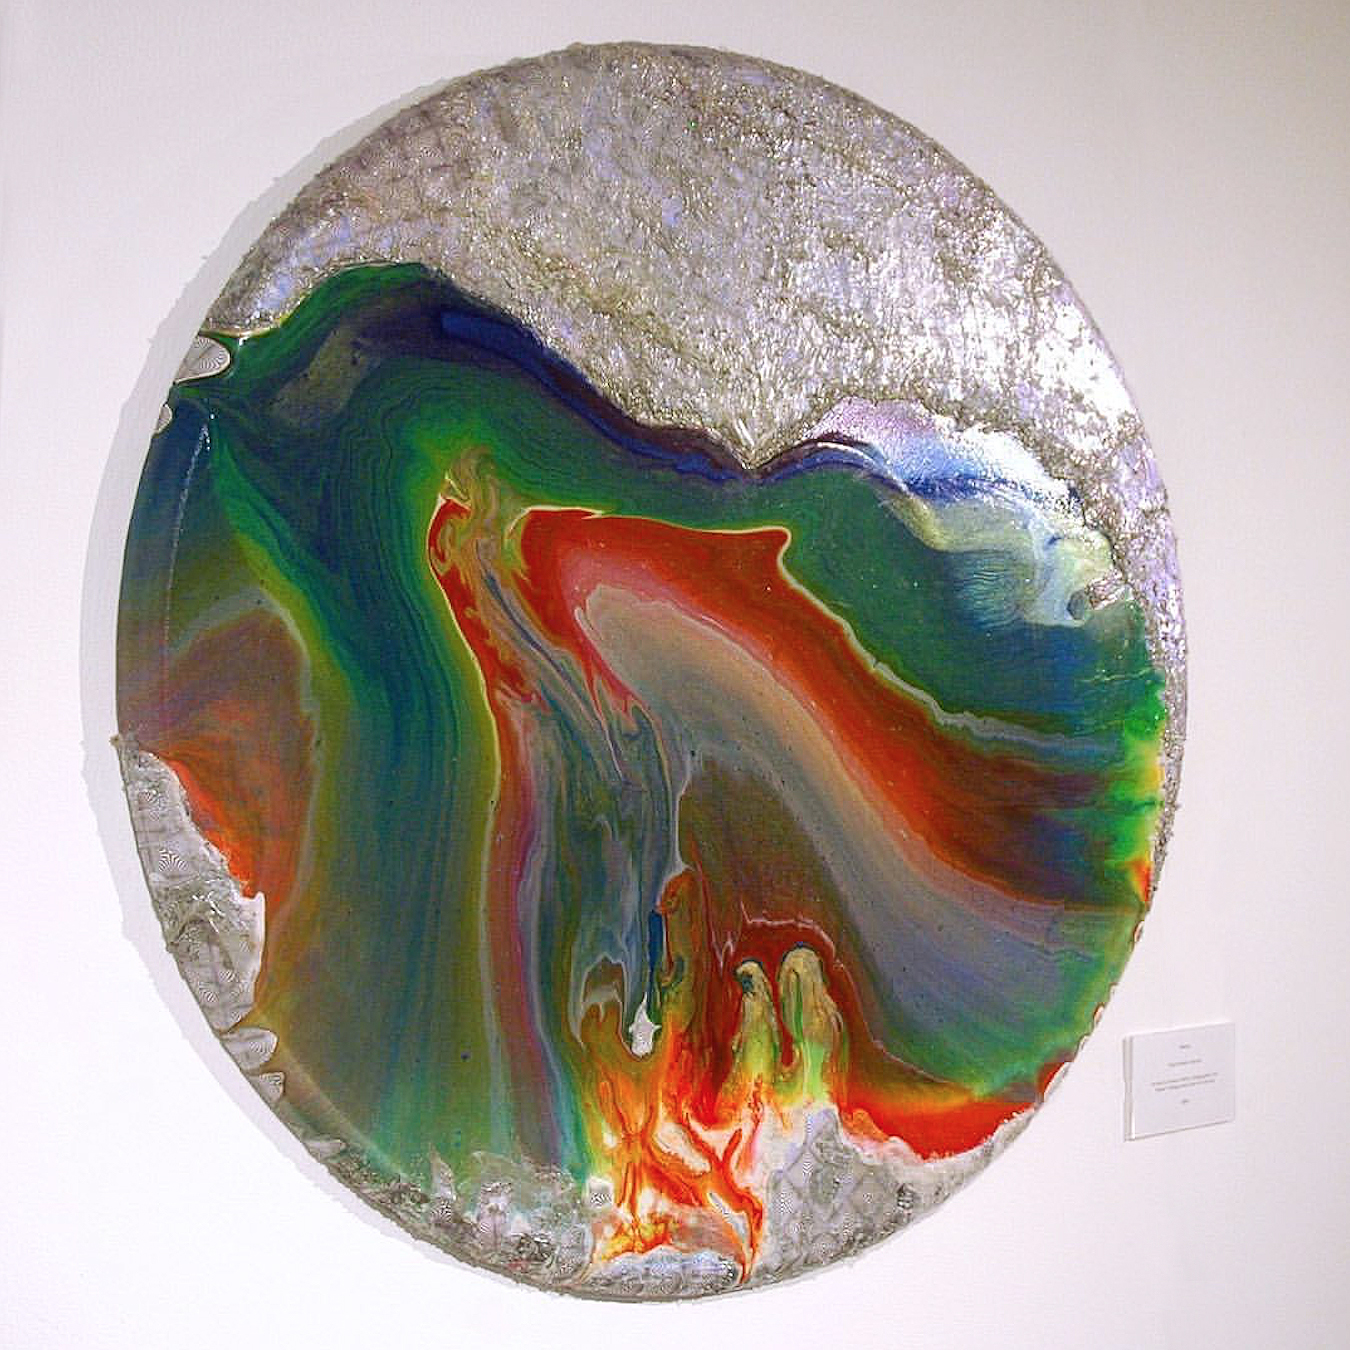 Psychedelic Geode